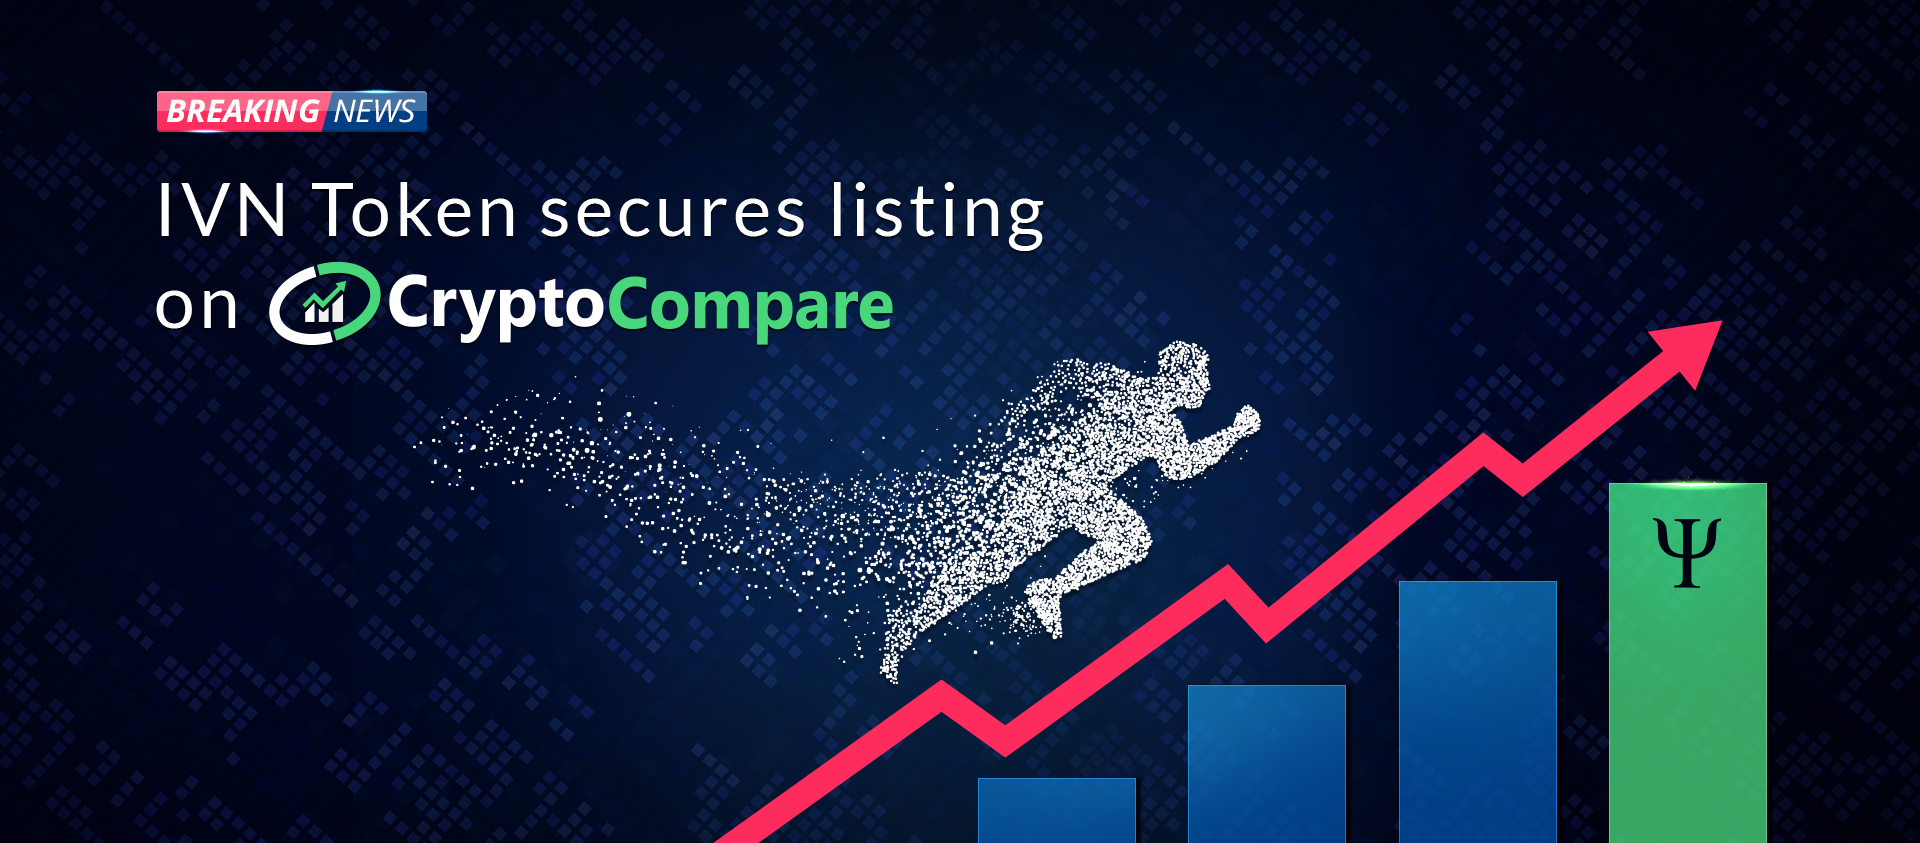 IVN Token is now listed on CryptoCompare